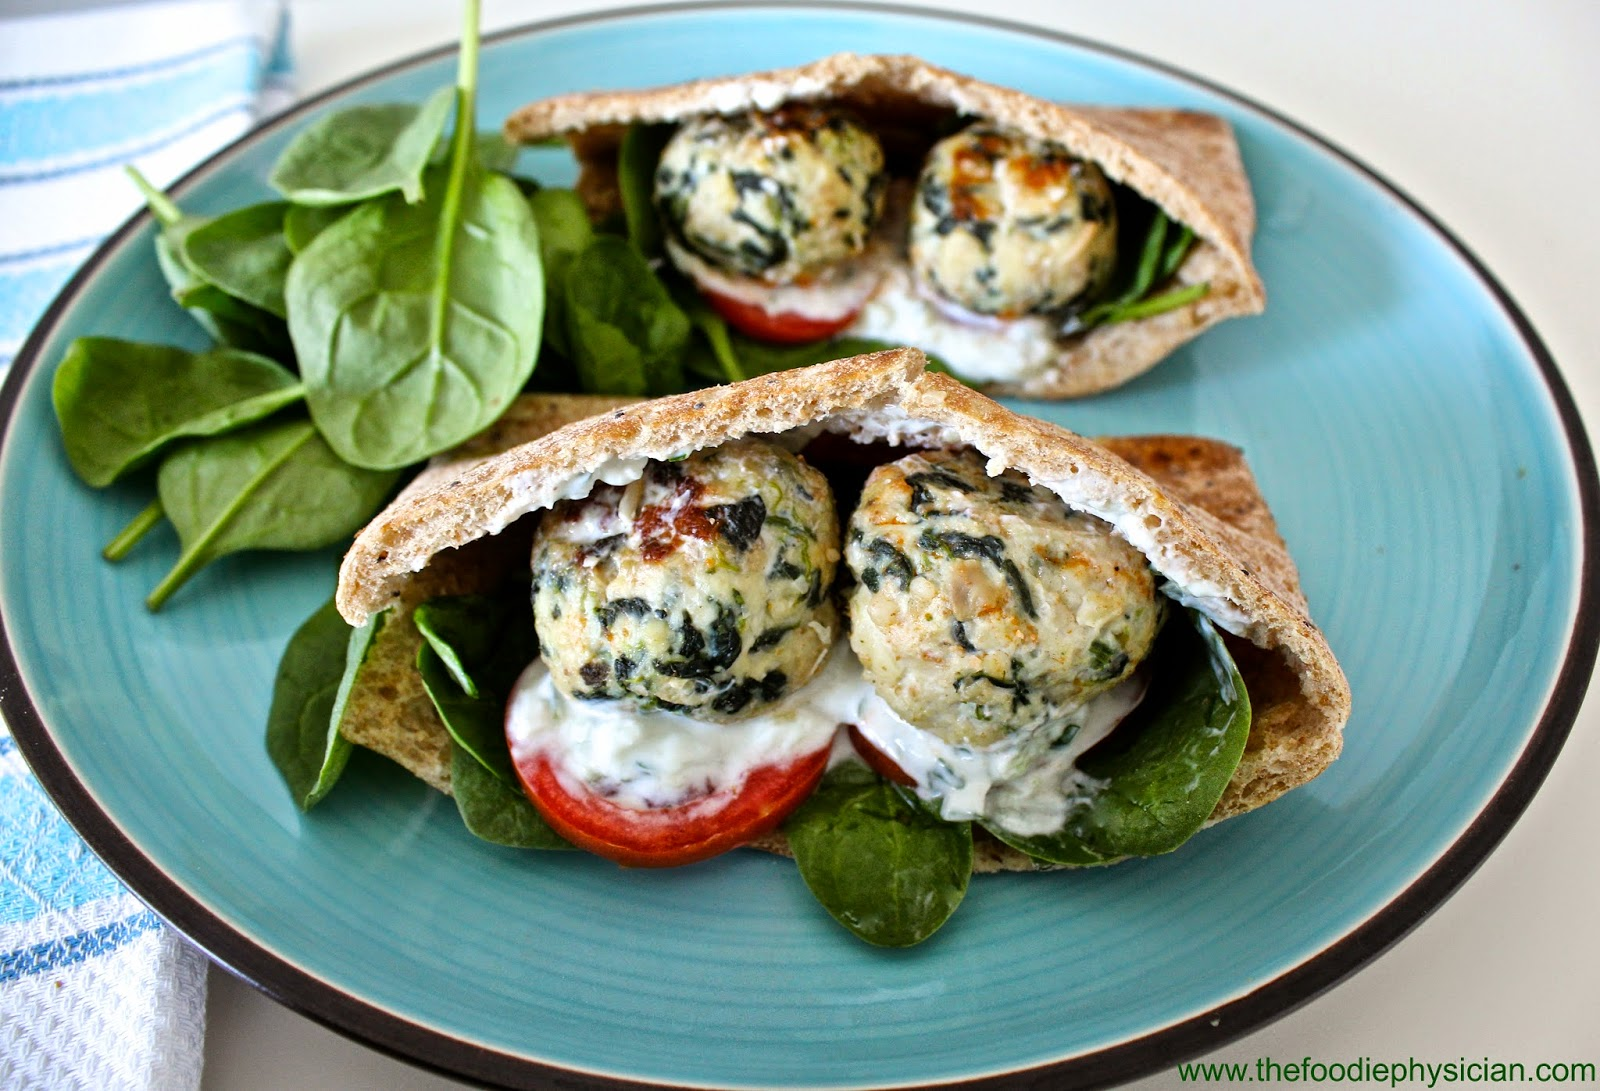 ... Foodie Physician: Cook Once, Eat Twice: Greek Meatball Pita Sandwiches